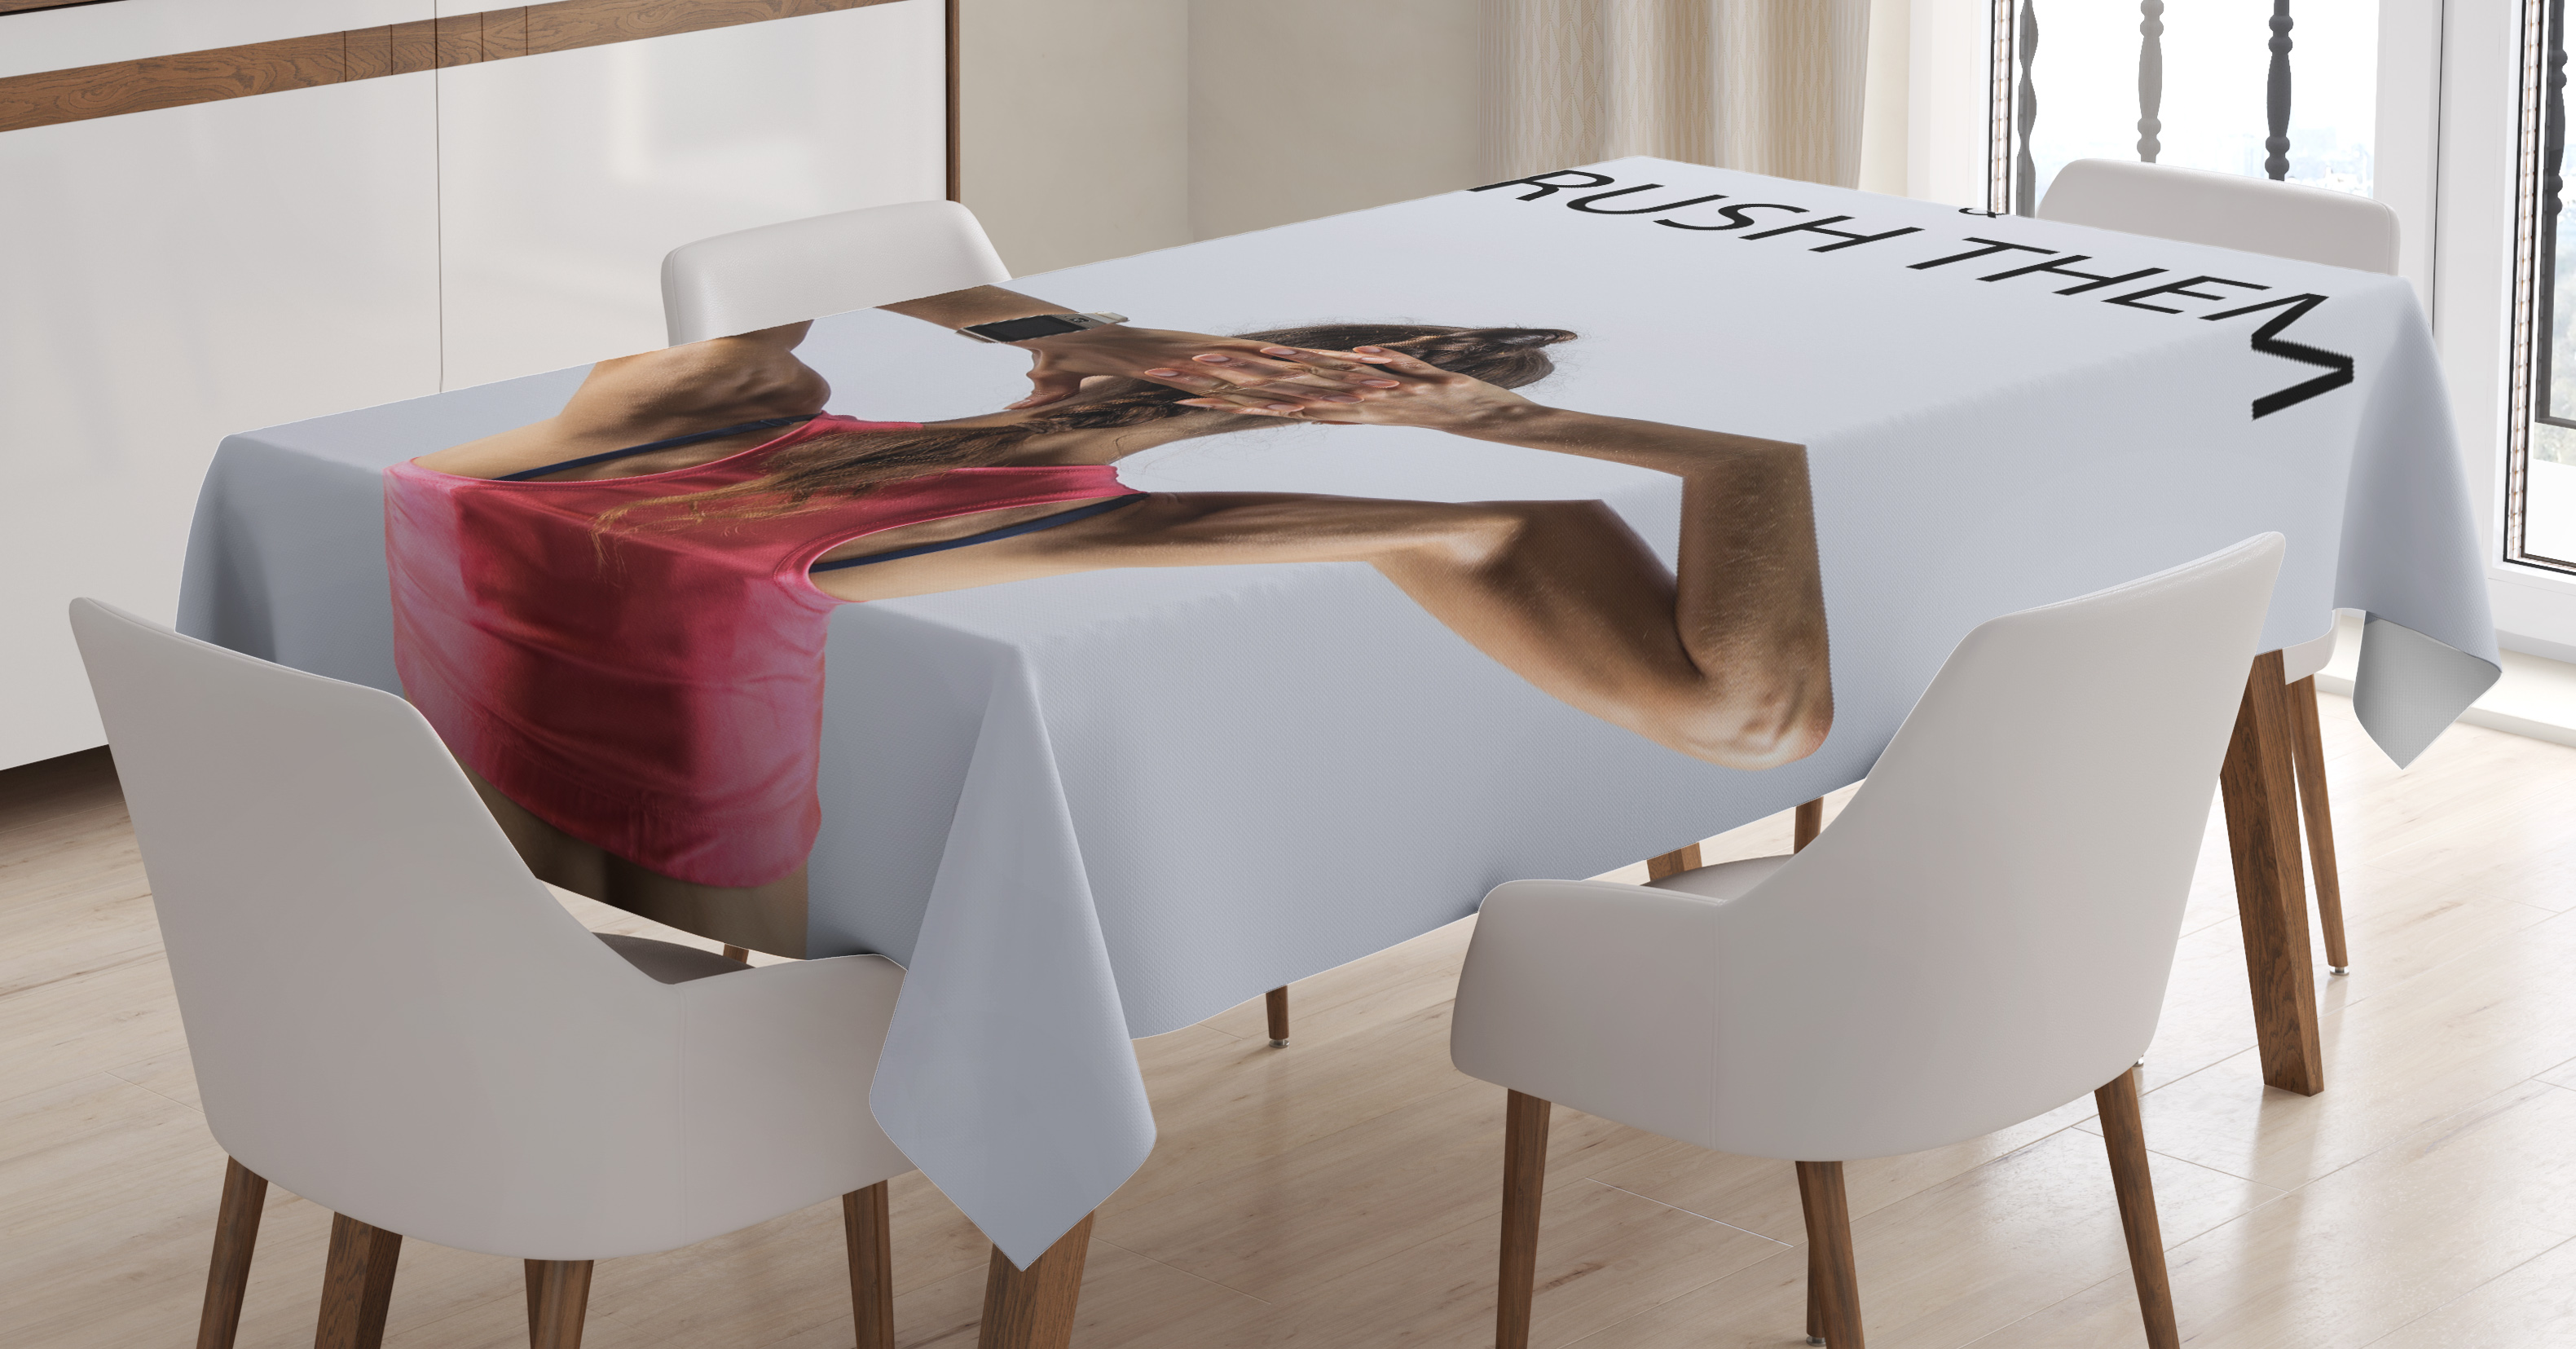 Fitness Tablecloth Athletic Model Woman Back View Set Goals And